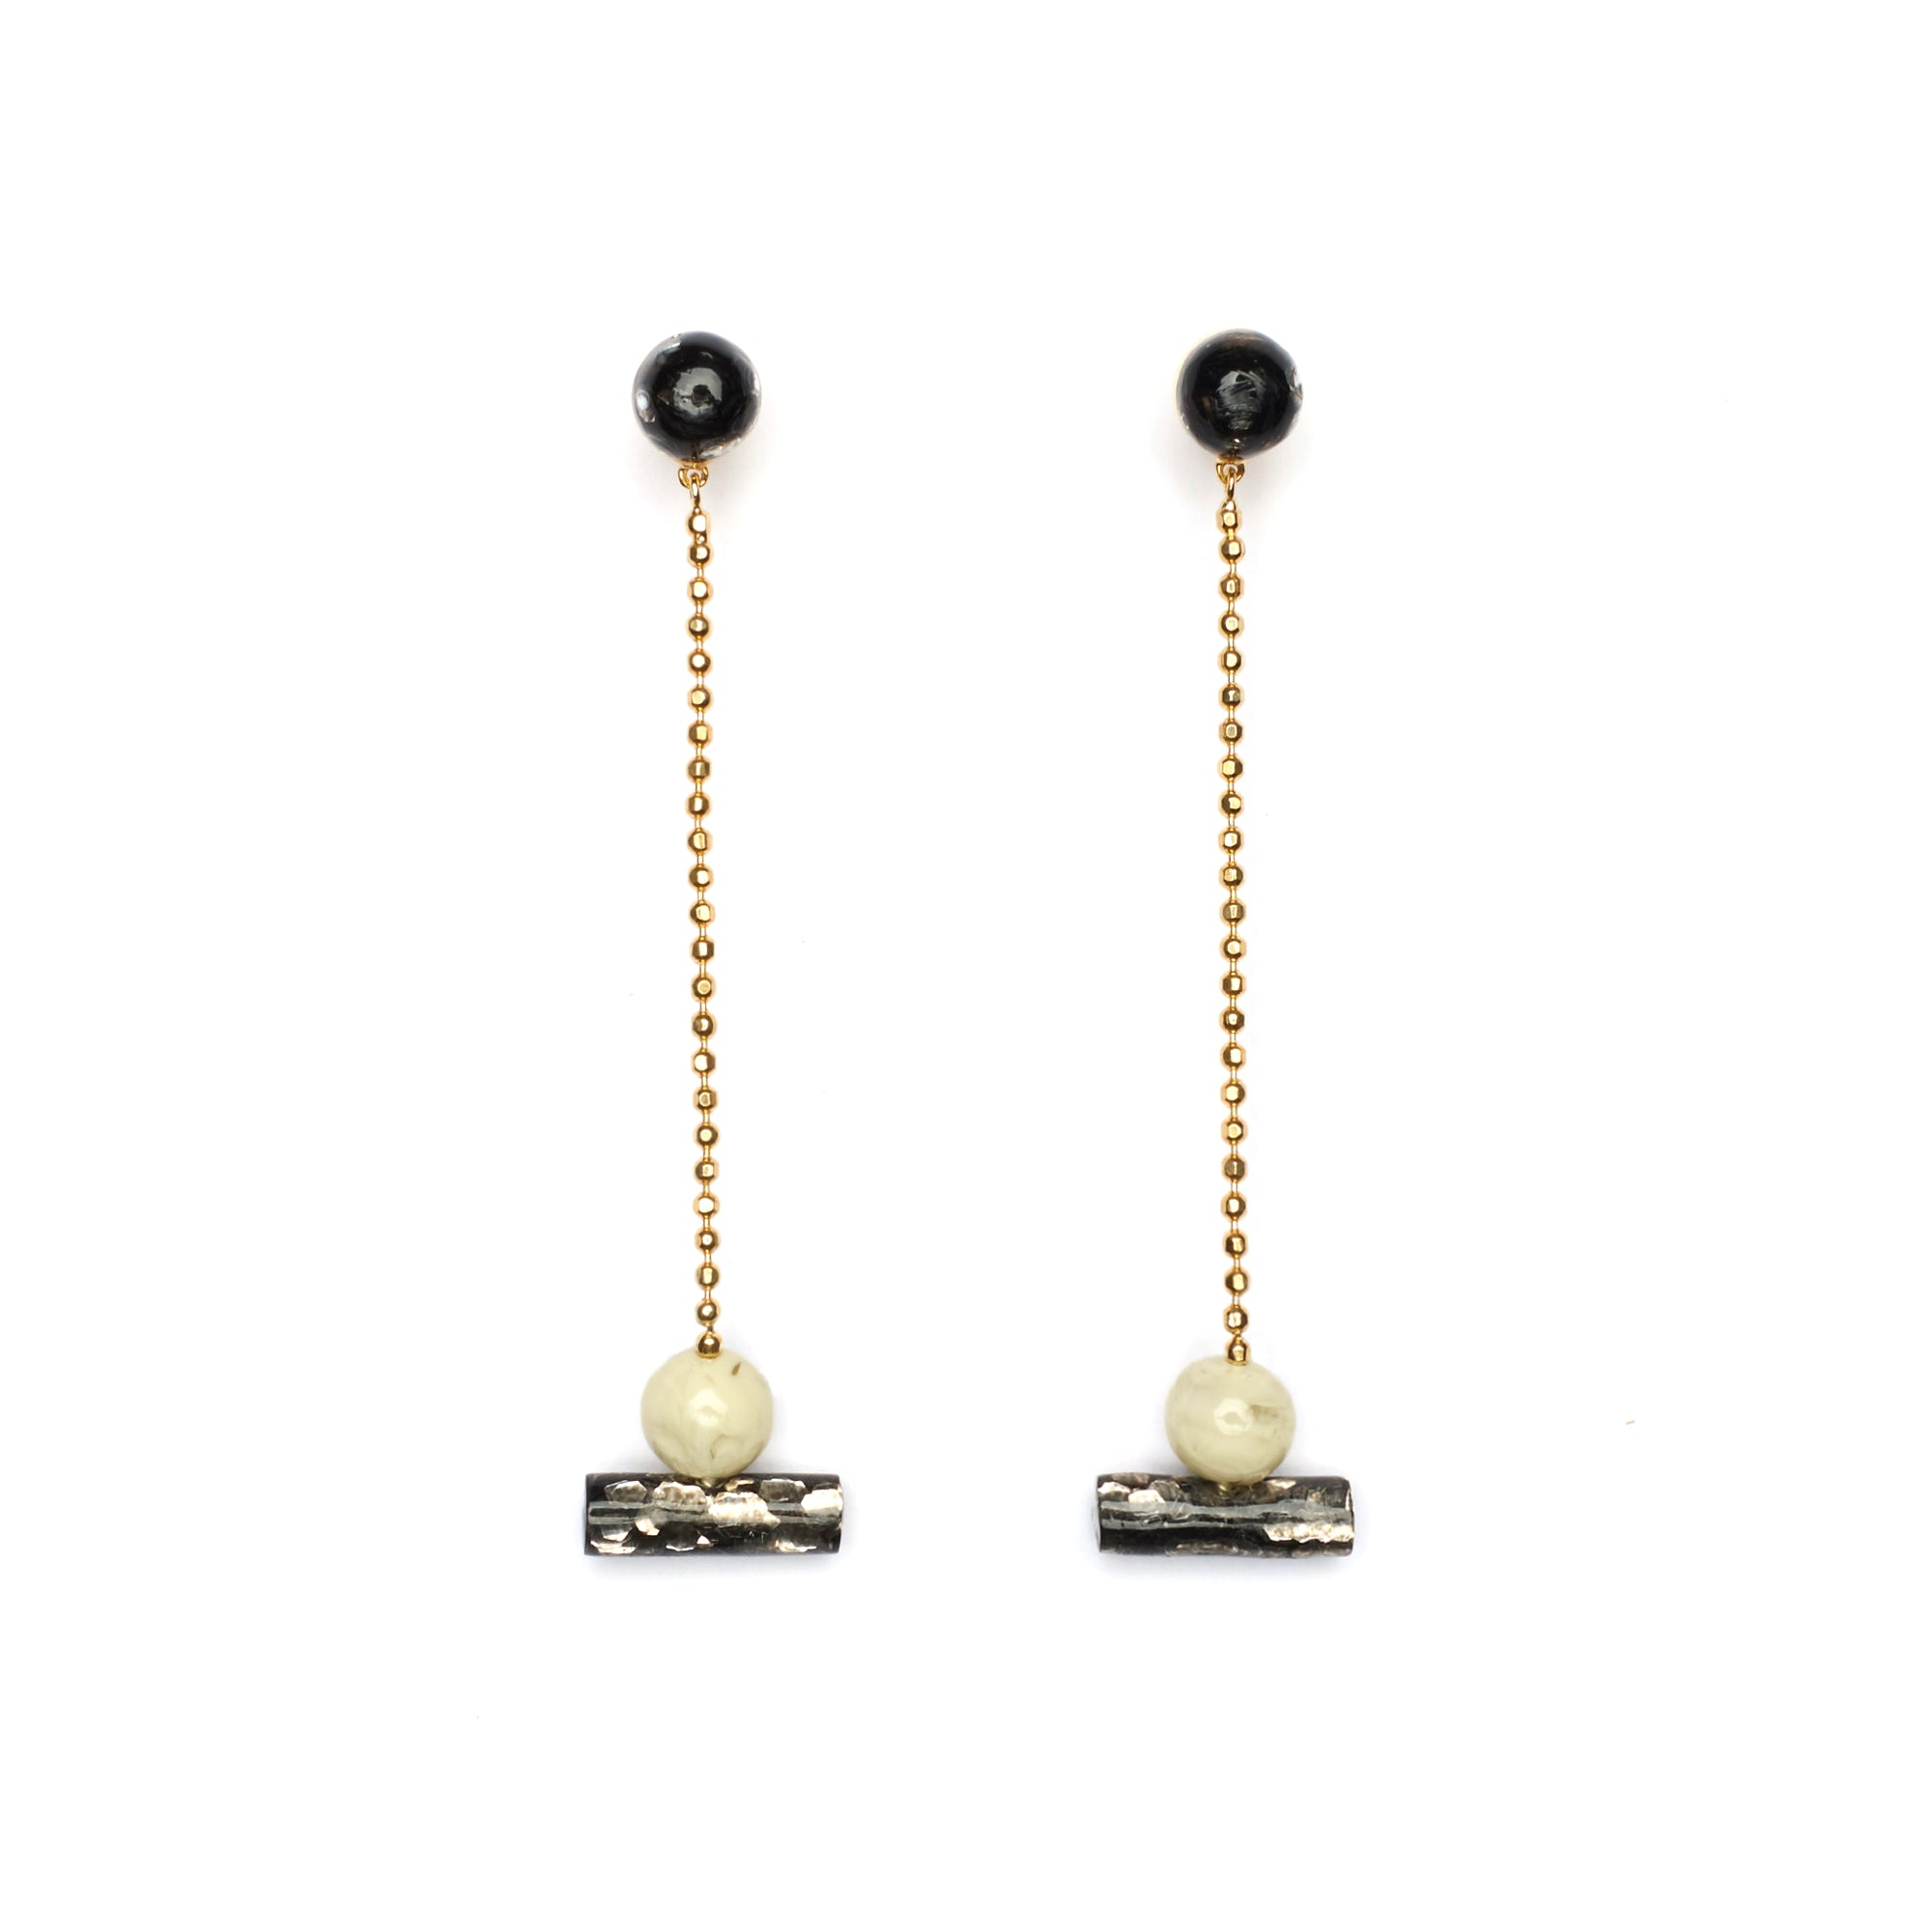 Resin Actuality Earrings -Luxe